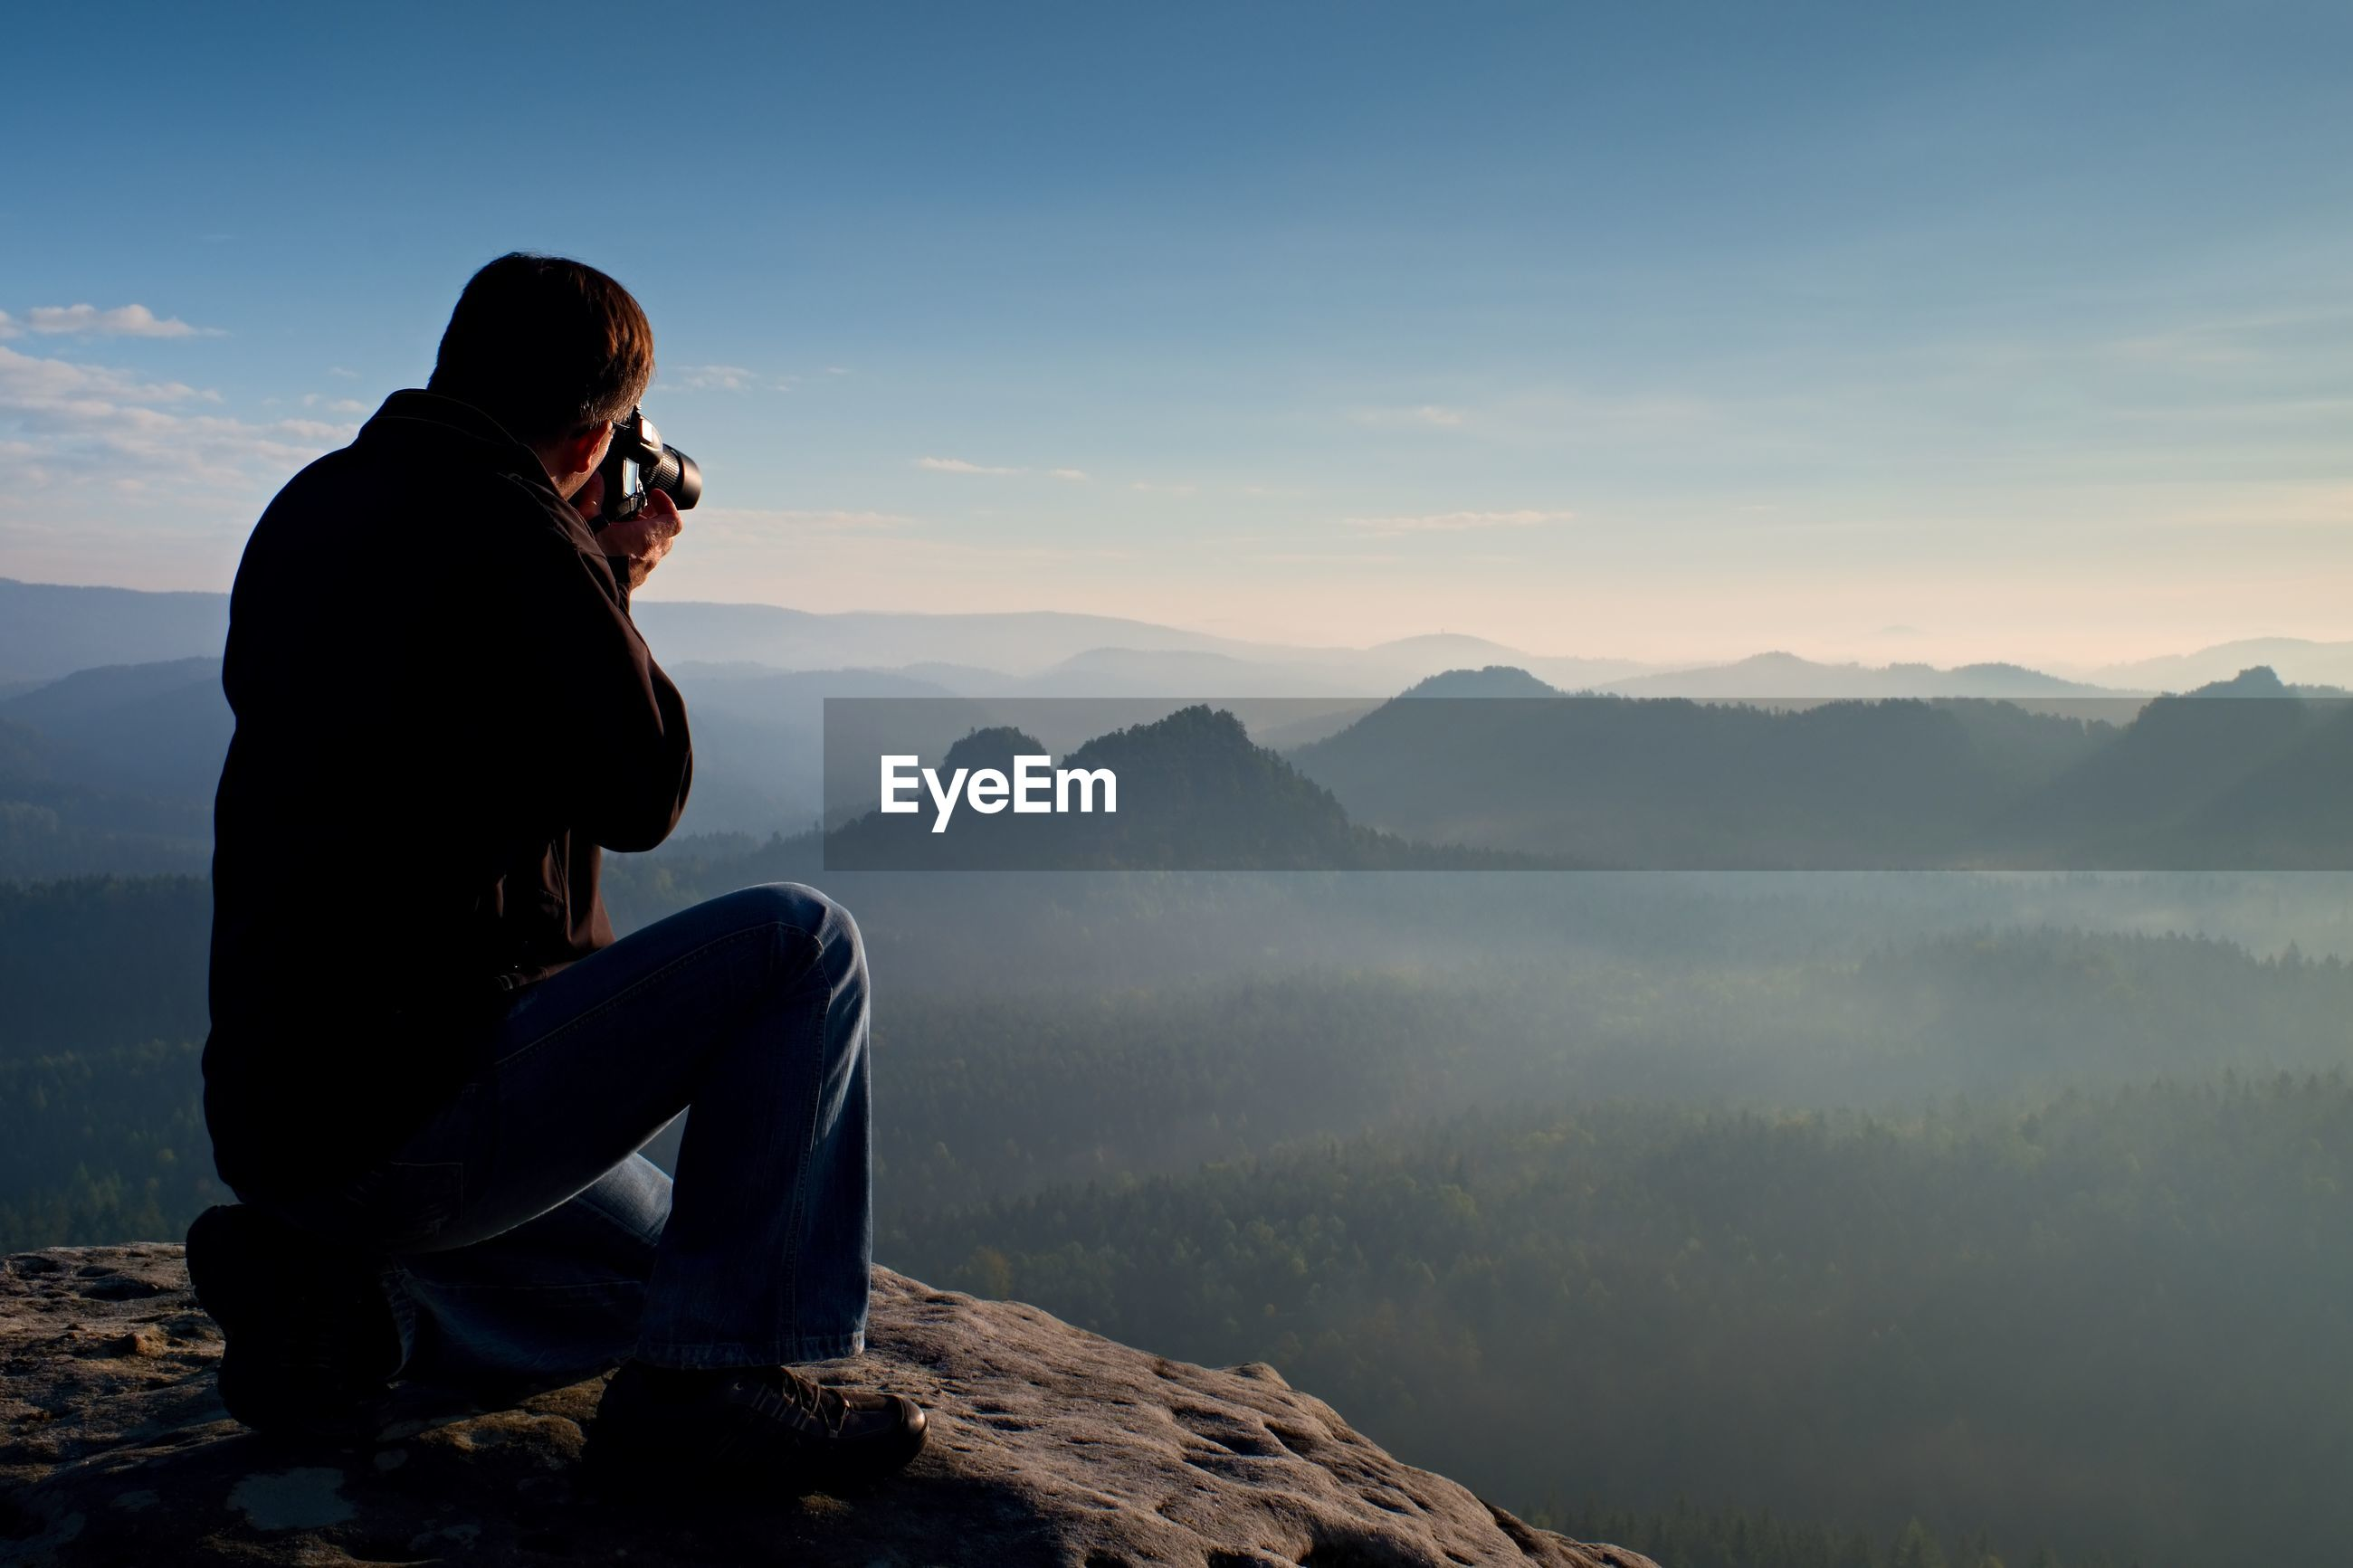 Dark hair man is taking photo by big mirror camera on the neck on the peak of mountains